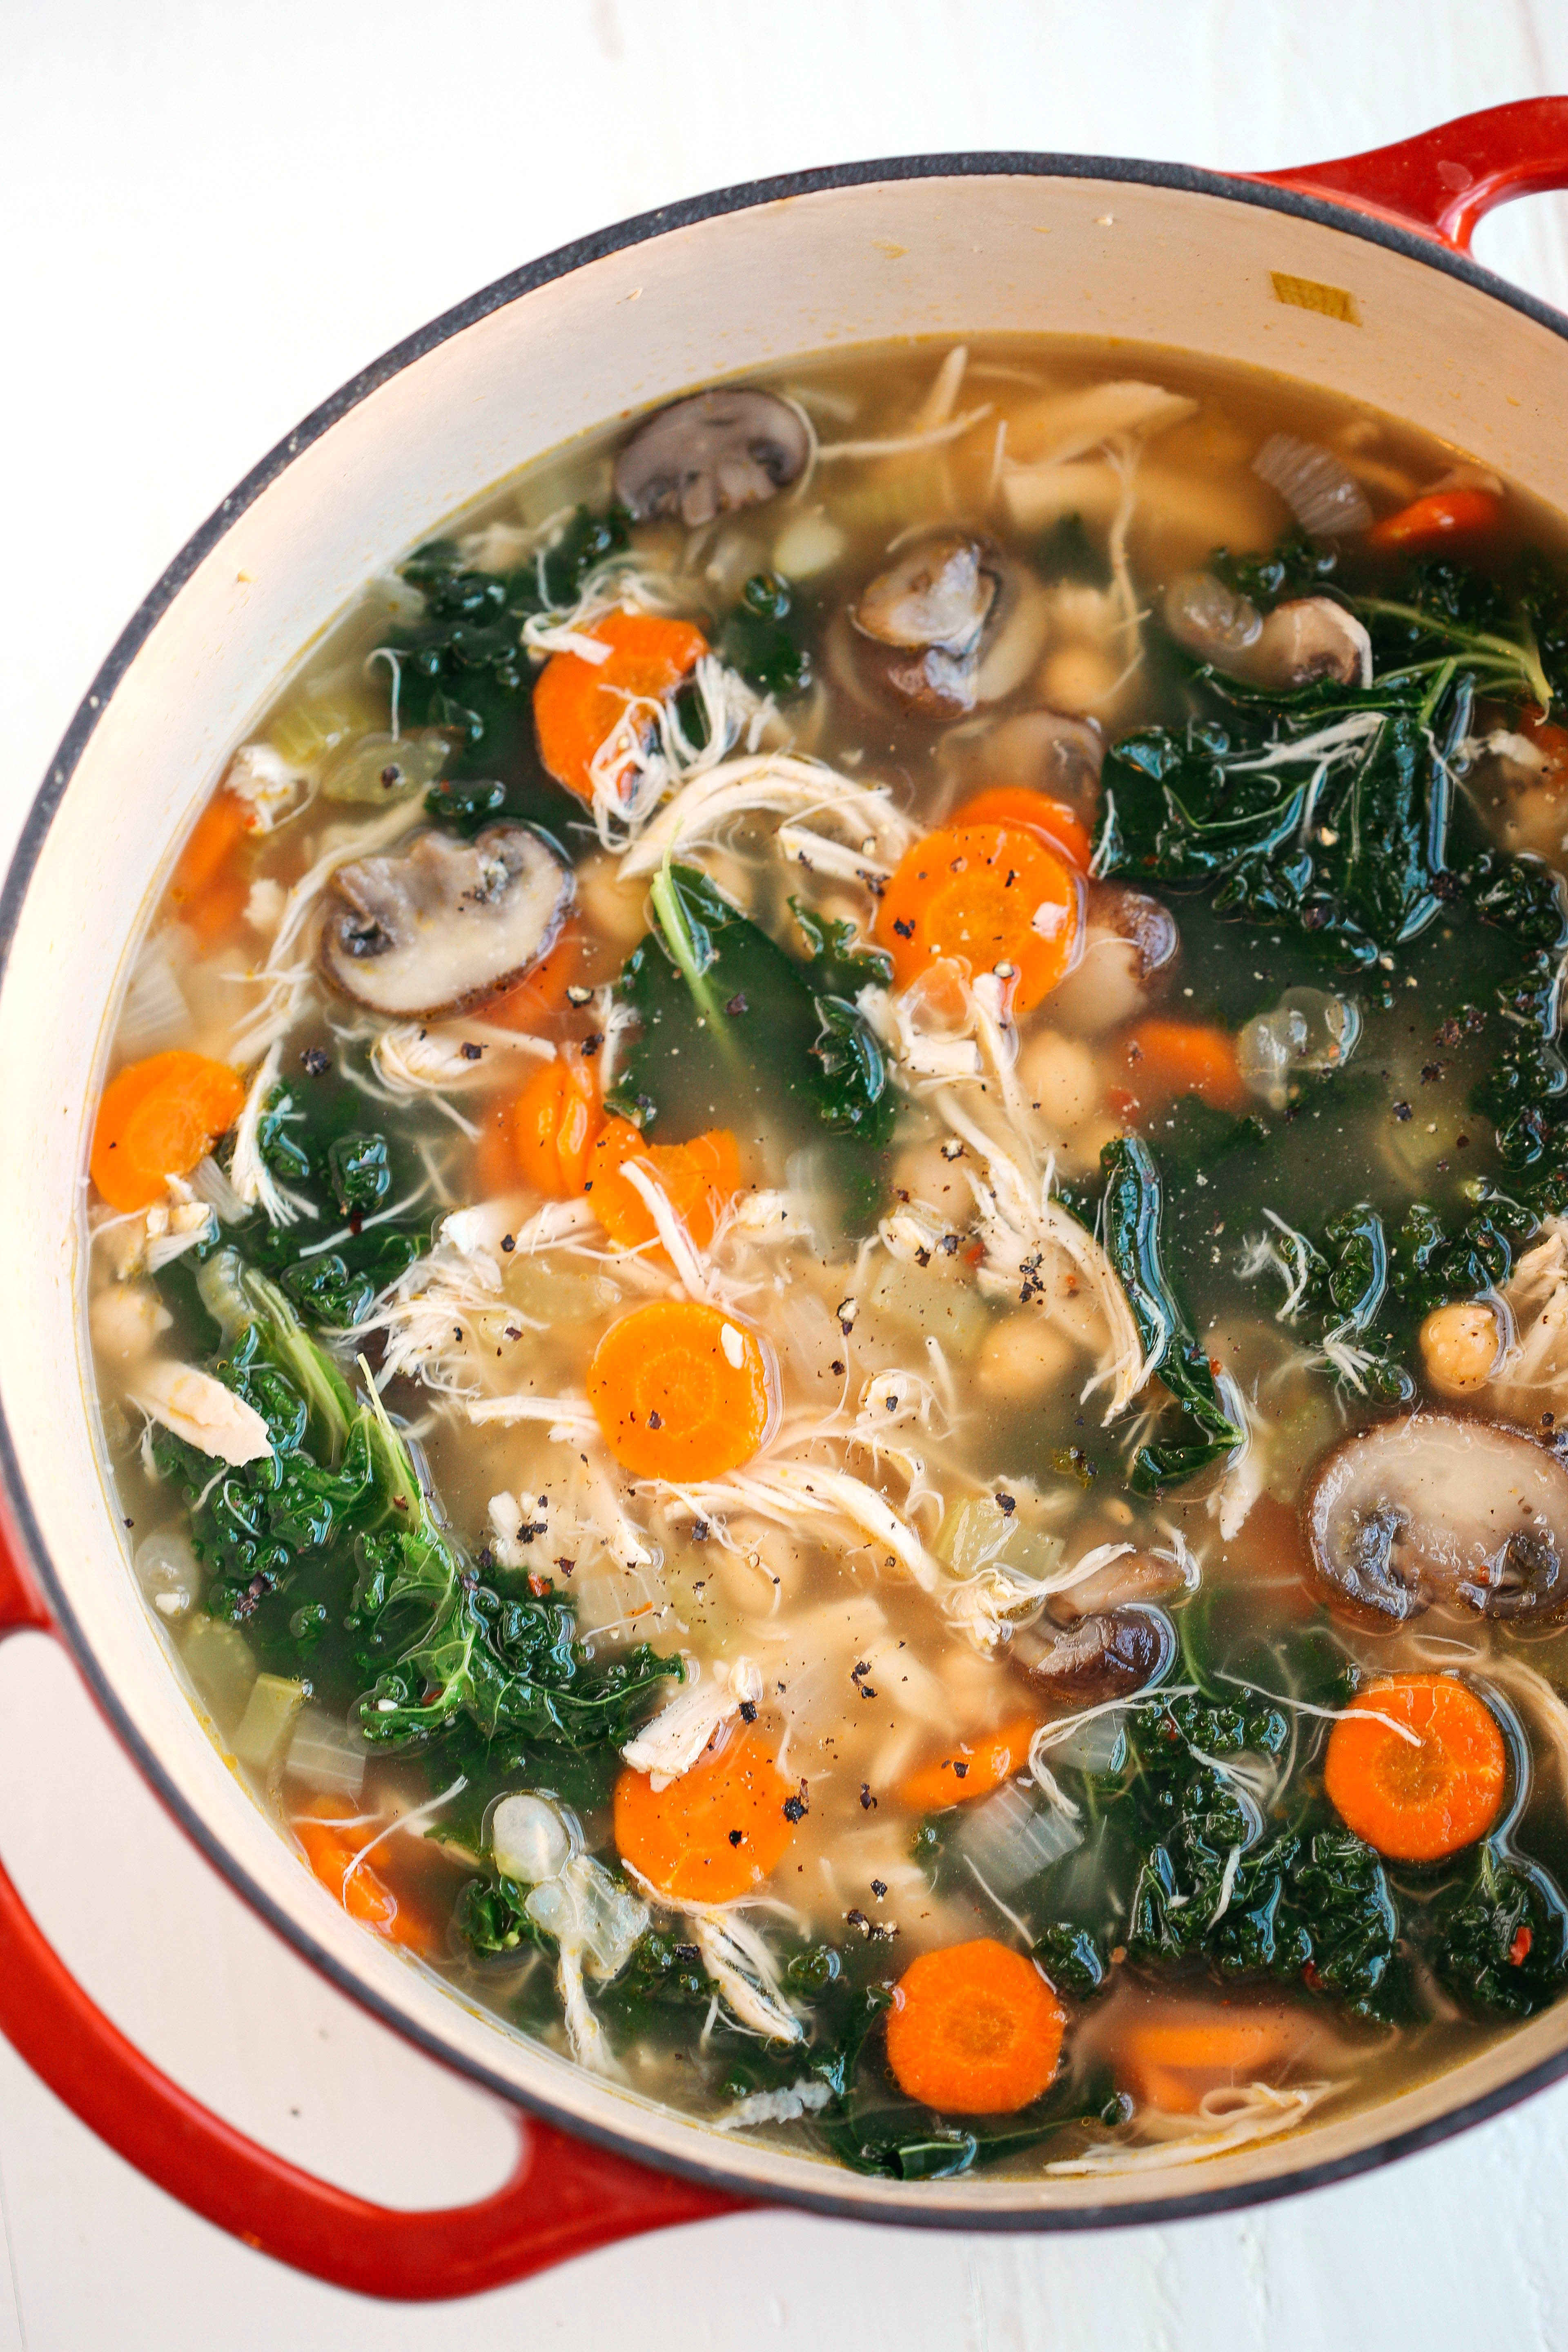 Chicken Soup Recipe Healthy  Top 10 Favorite Healthy Soup Recipes Eat Yourself Skinny